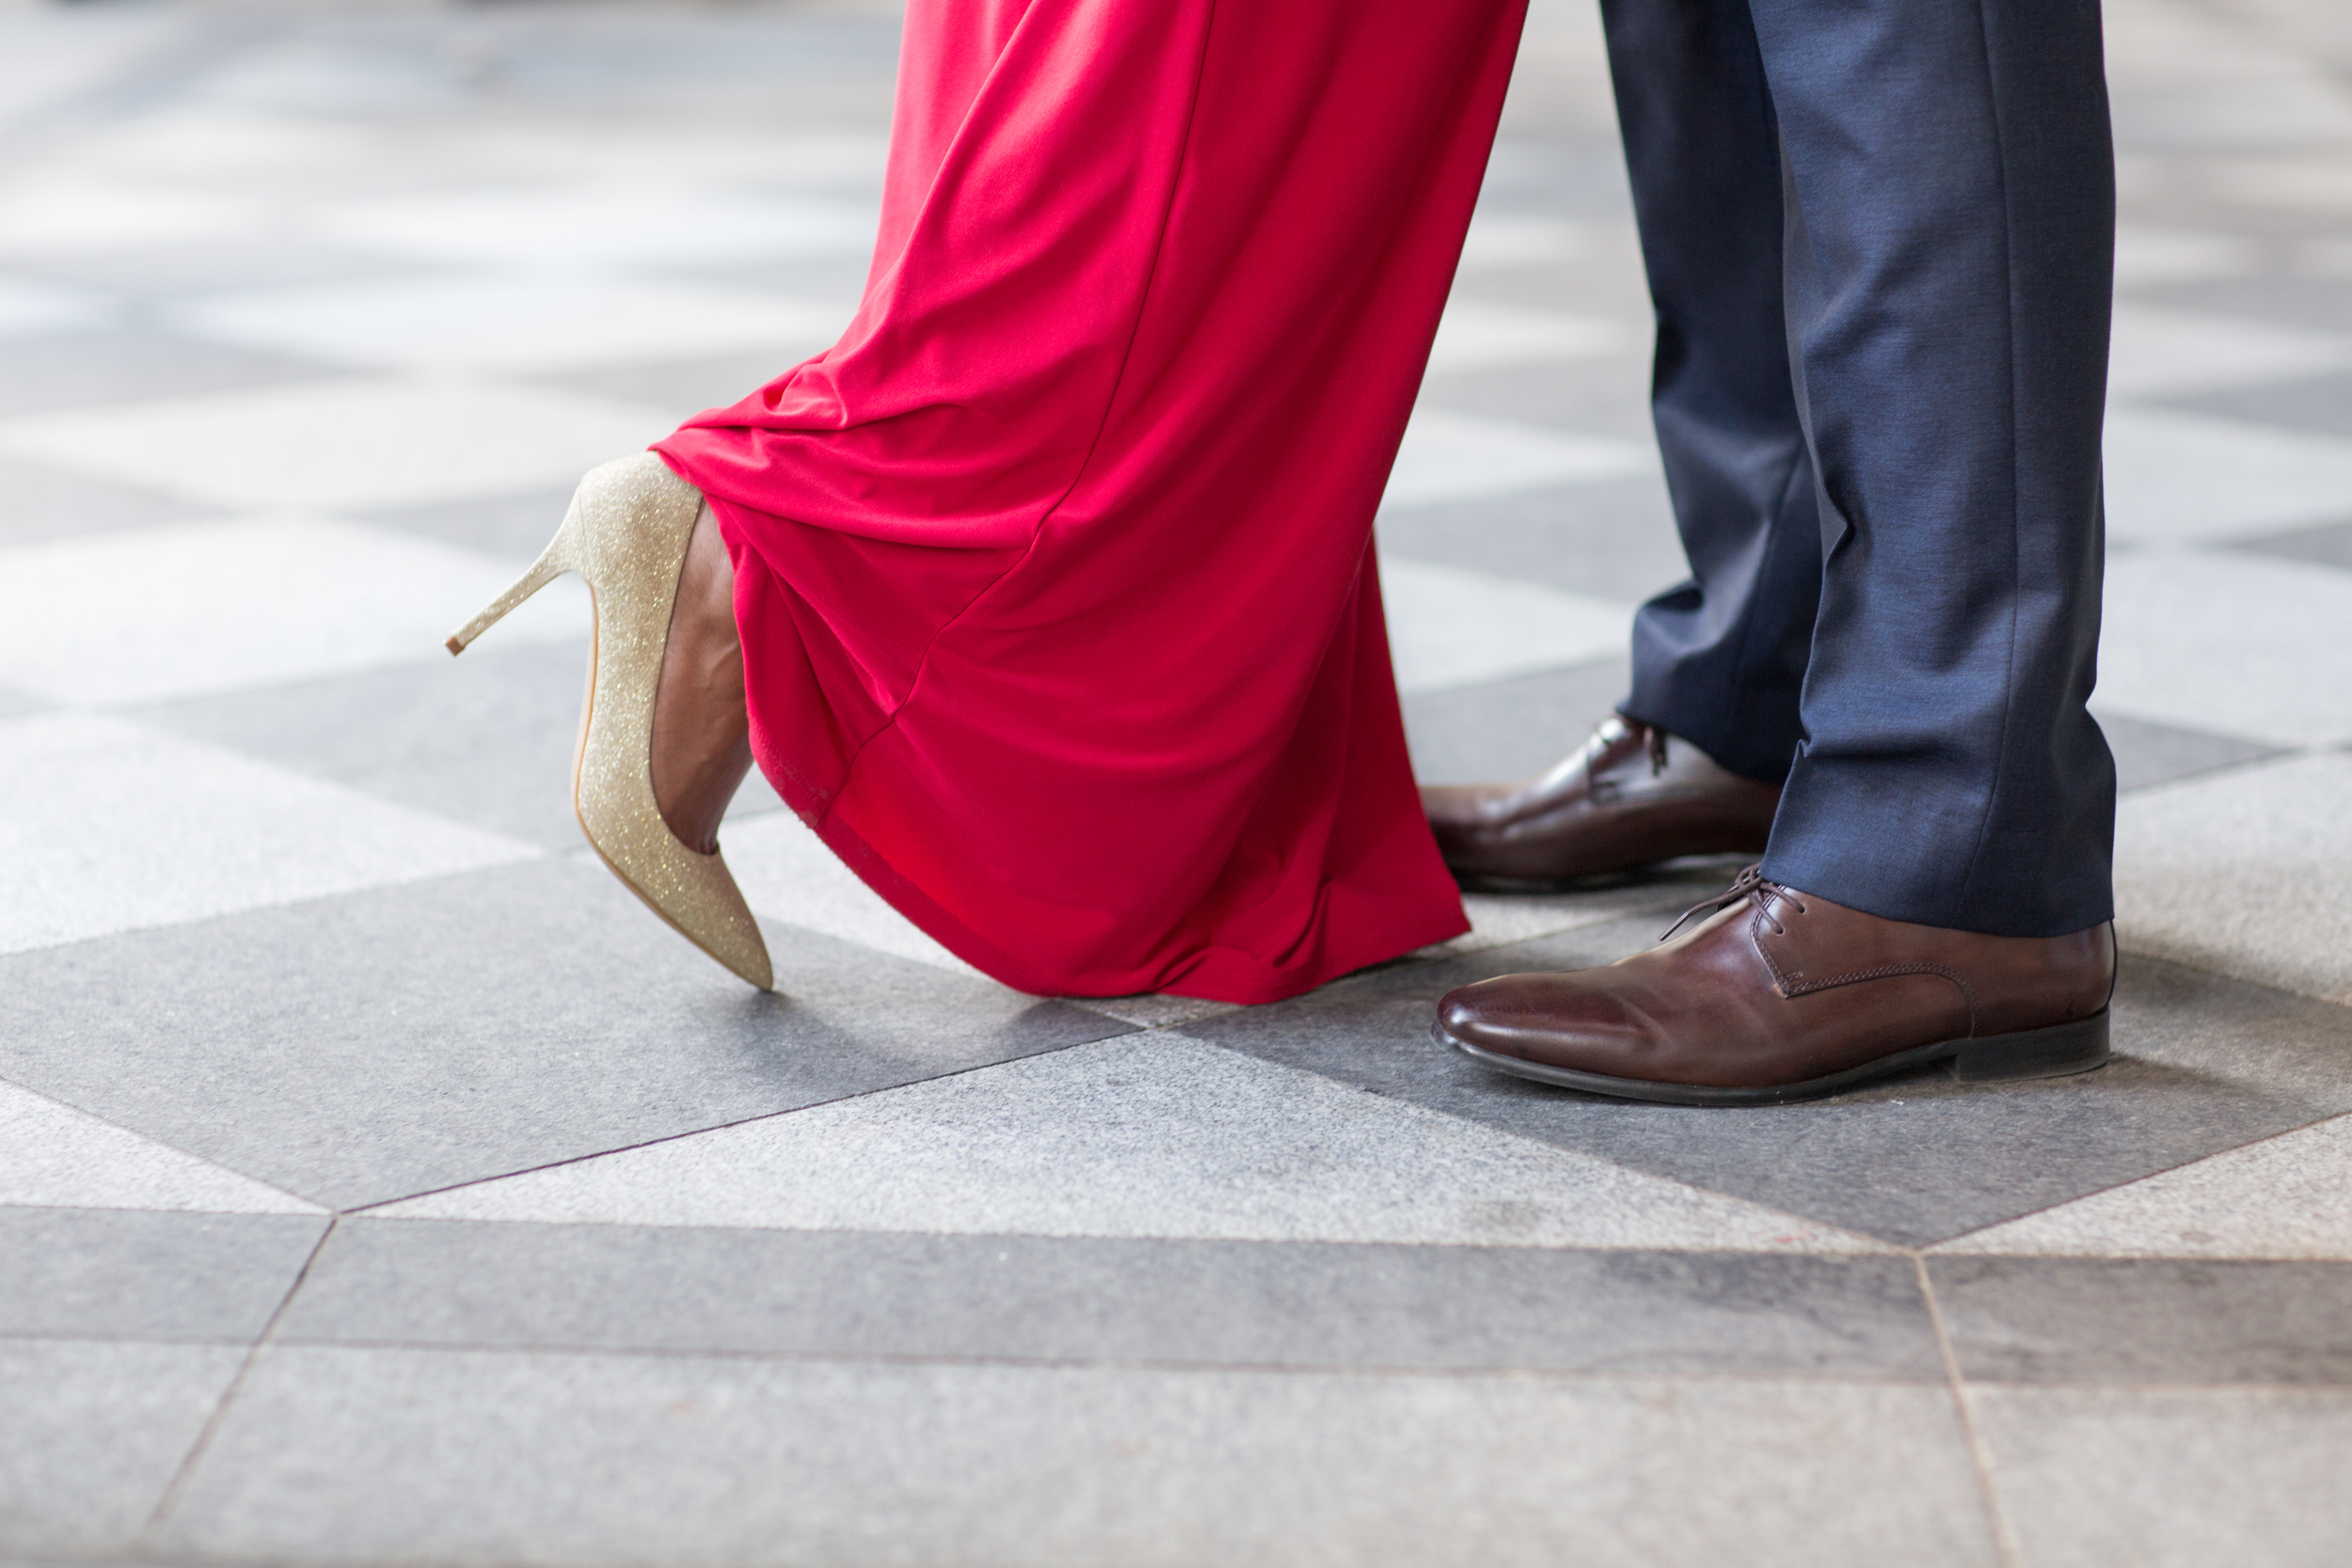 Elegant european style engagement photograph with red dress